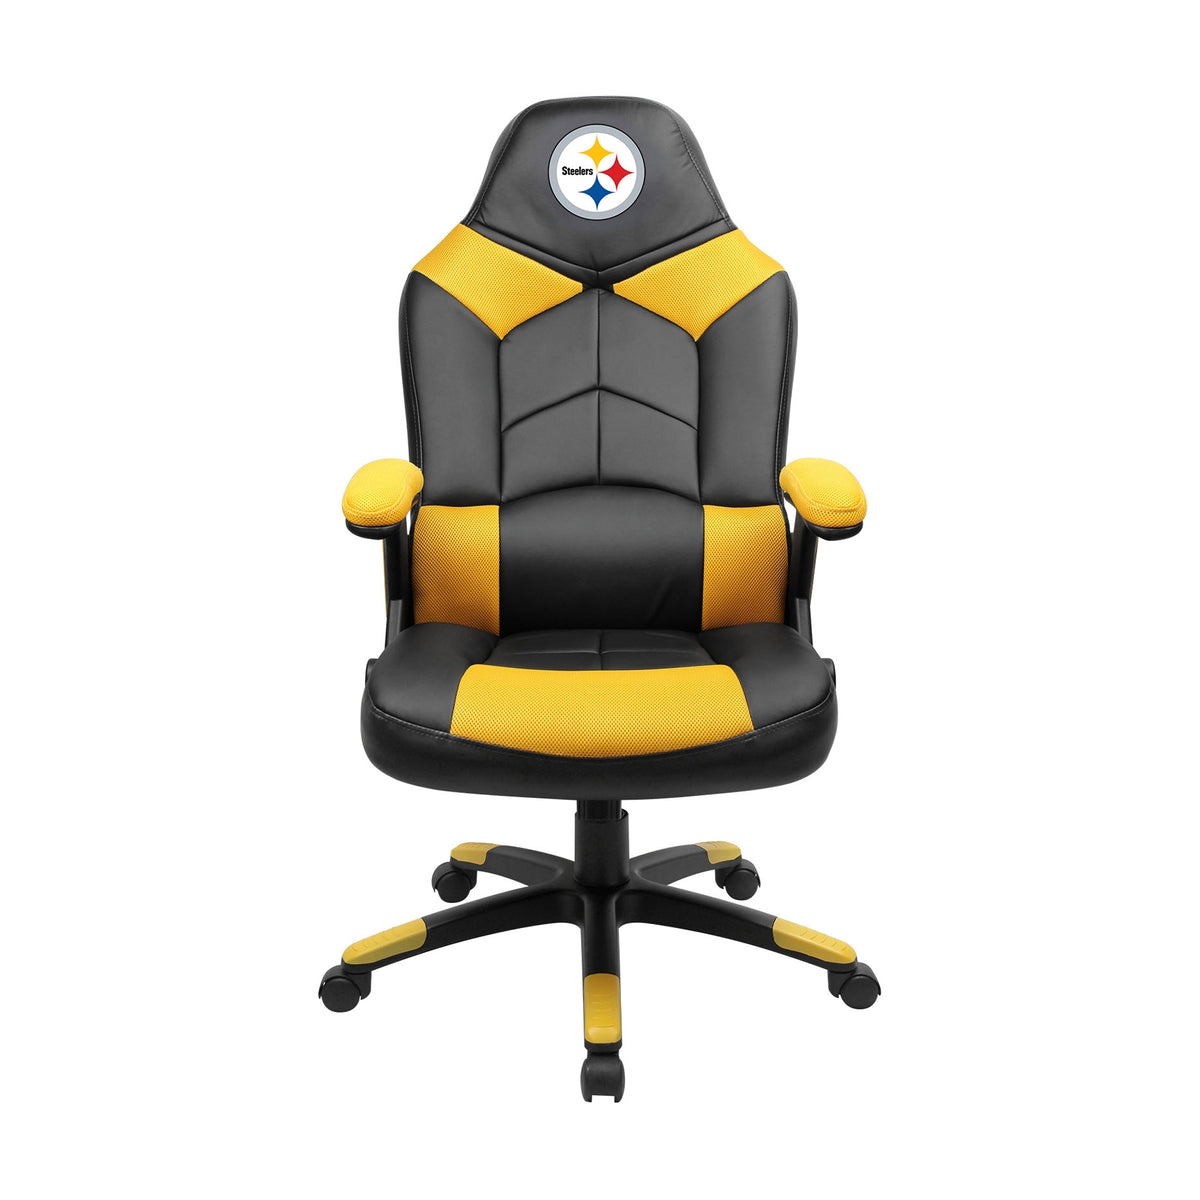 Pittsburgh Steelers Oversized Gaming Chair